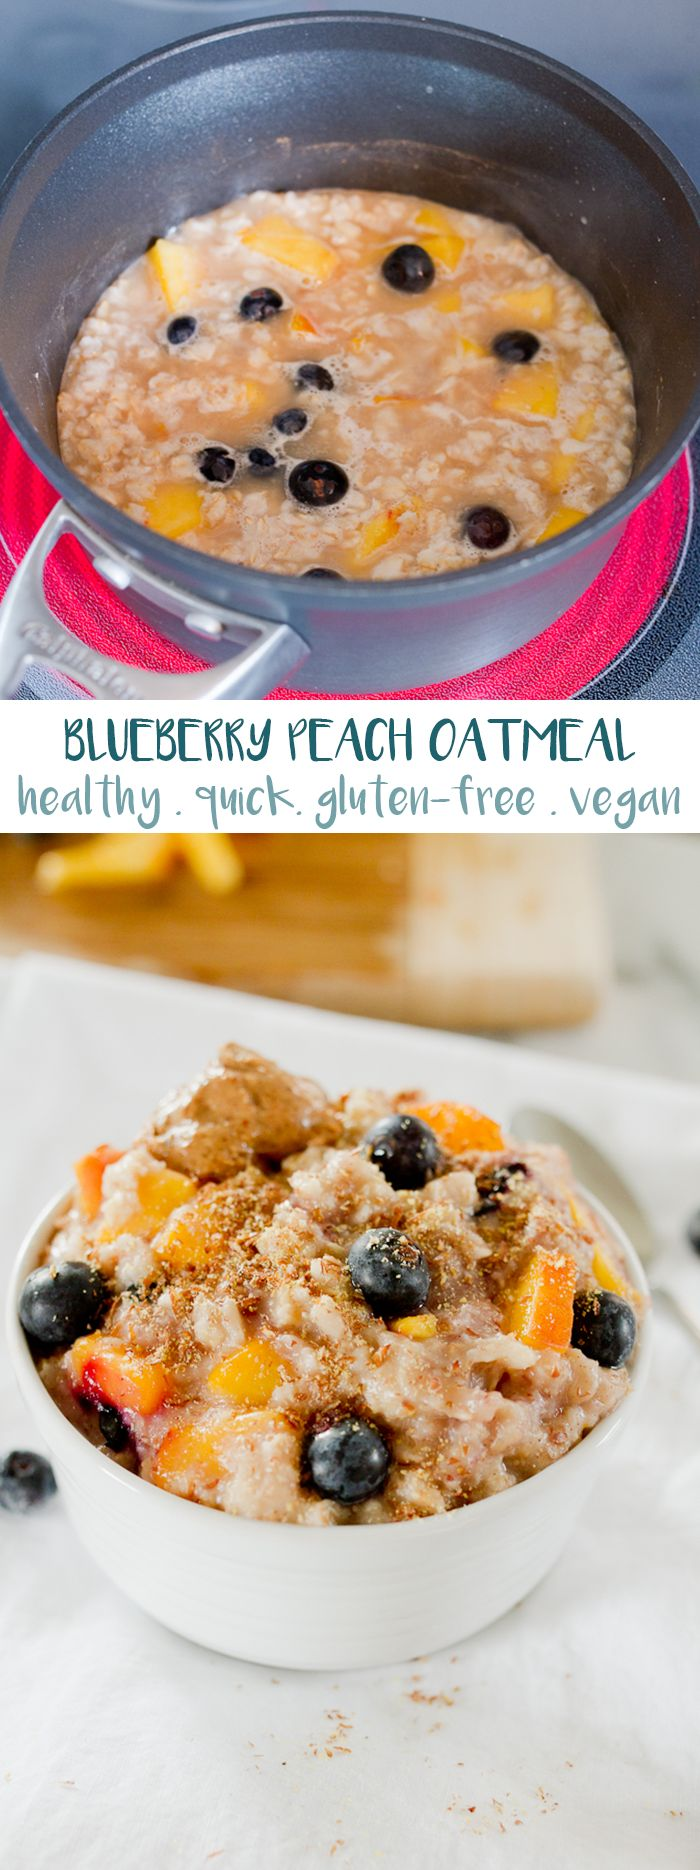 Add fresh peaches and blueberries to your oatmeal for a healthy and flavorful breakfast. Loaded with fiber, healthy fat and protein this delicious bowl of oats will keep you feeling full and energized all morning.